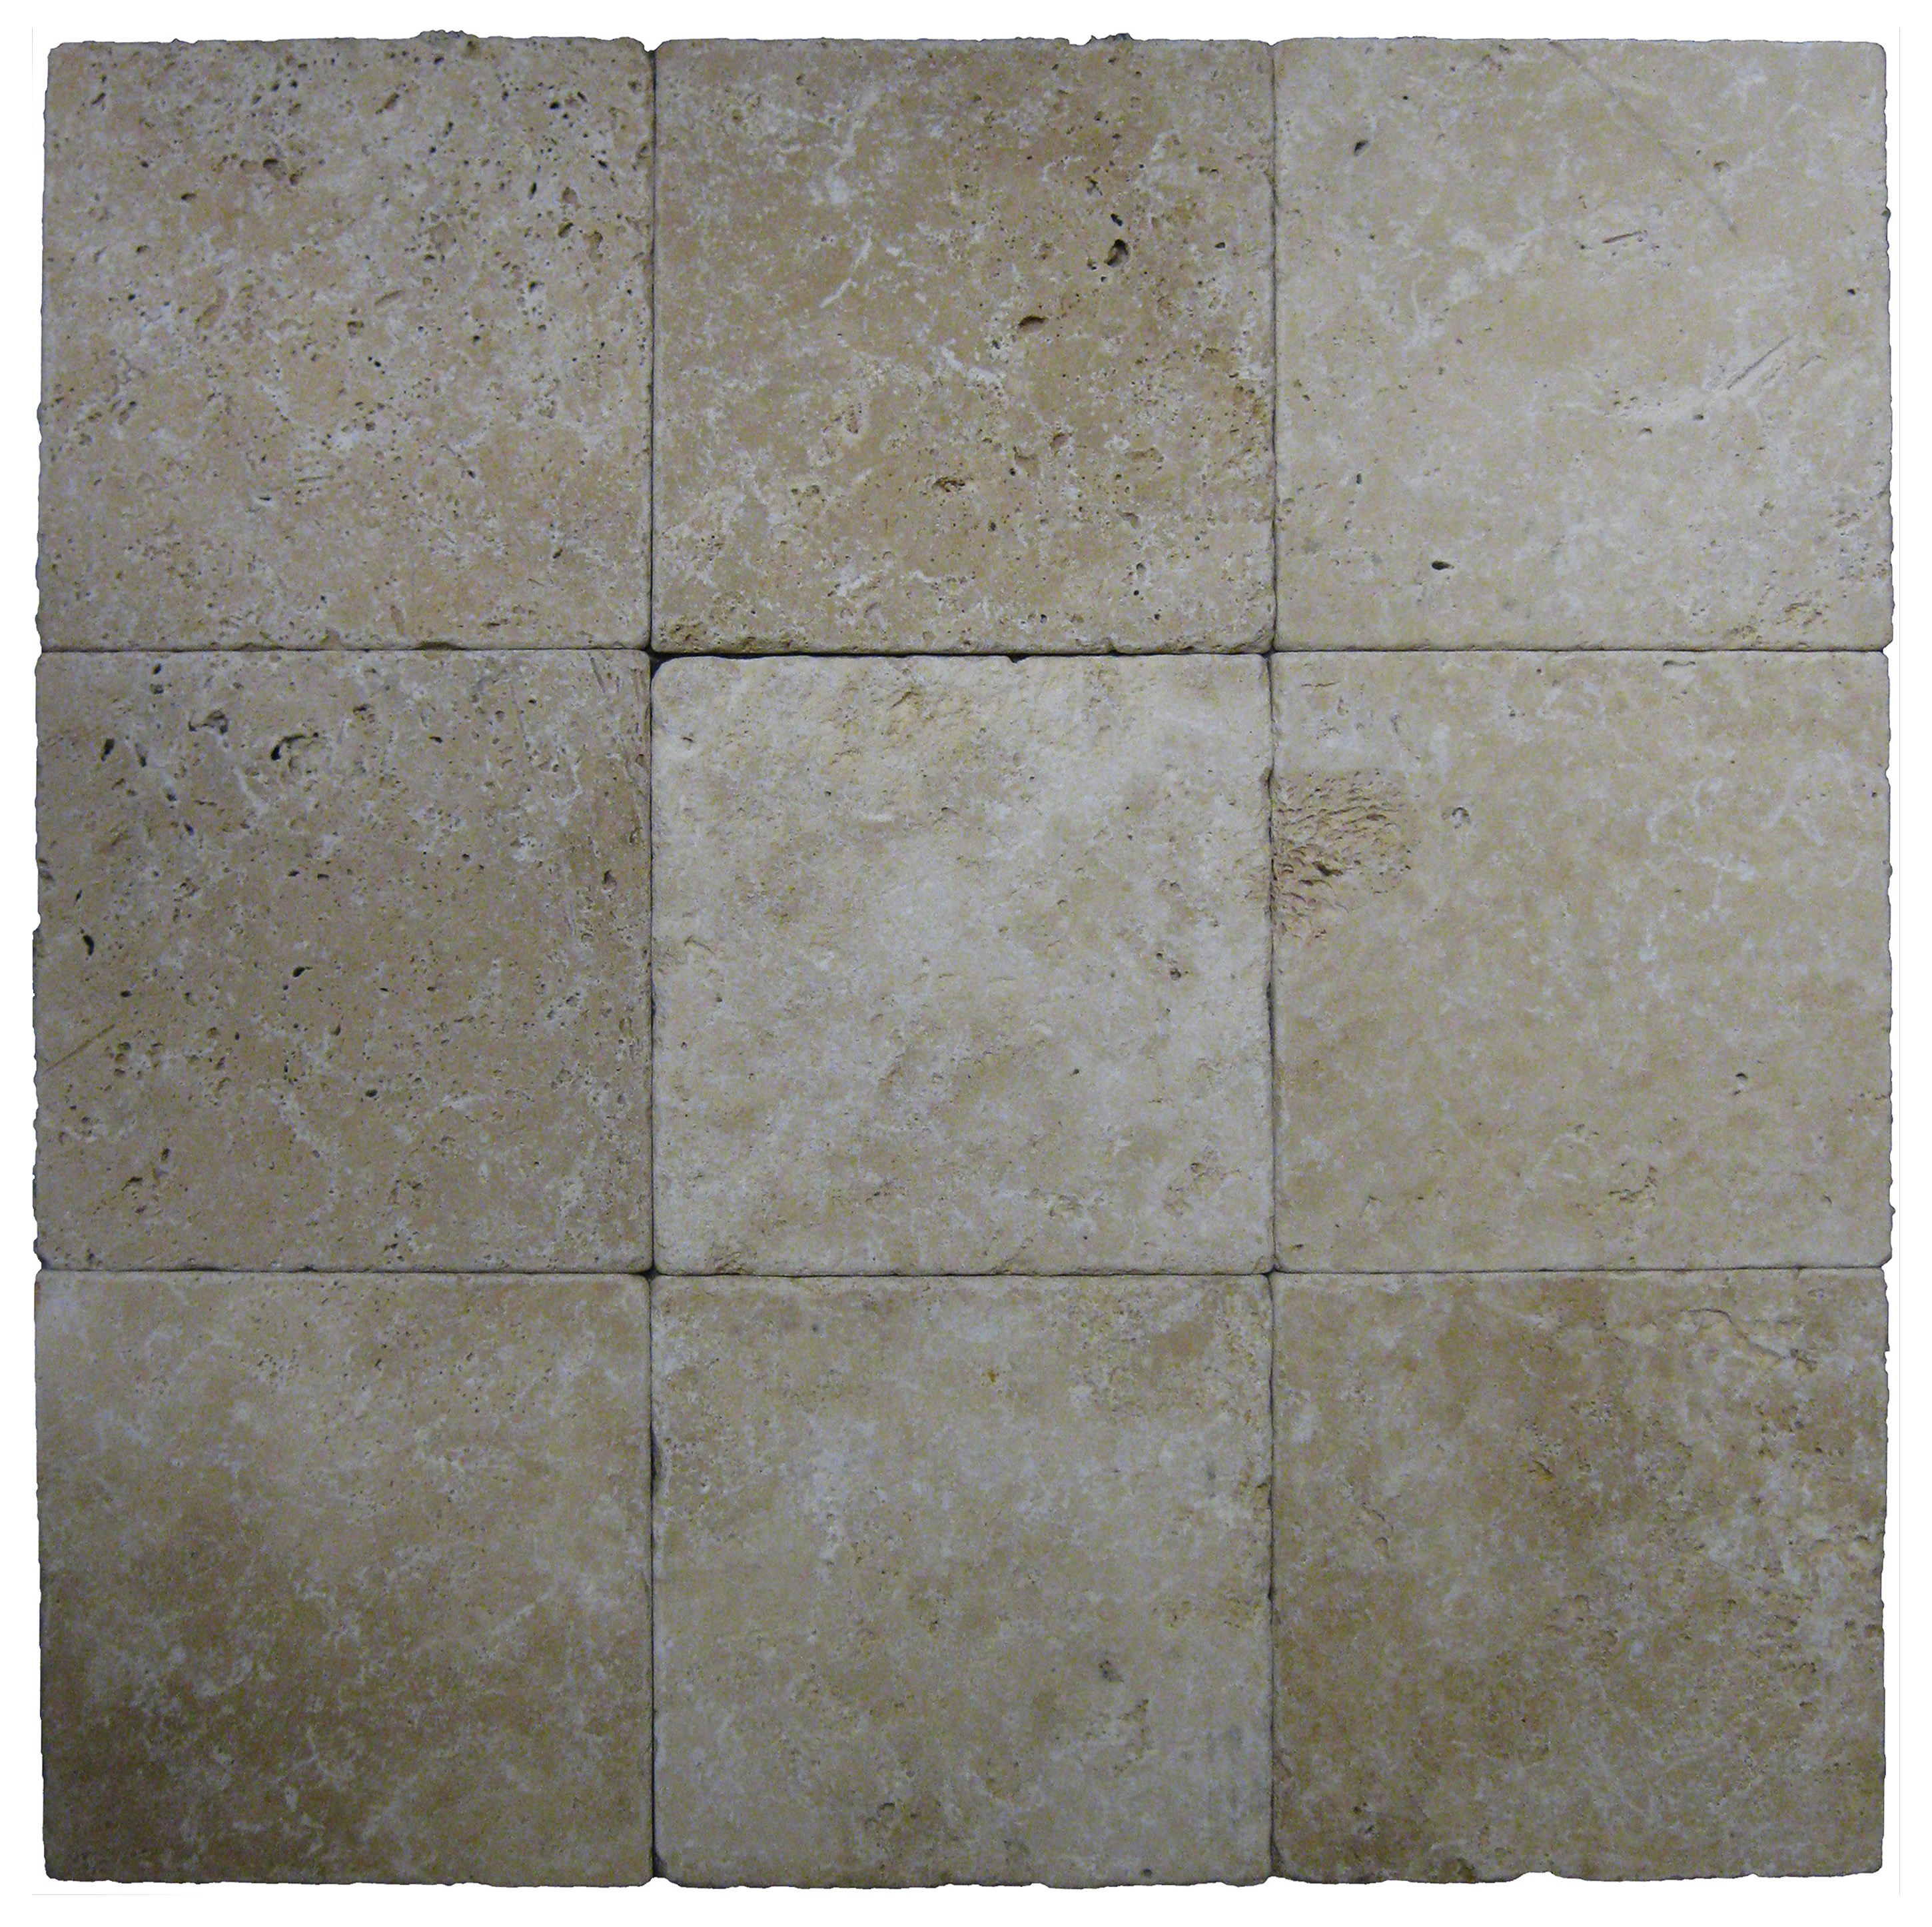 Toscana Tumbled Travertine Pavers 8x8-pavers sale-Atlantic Stone Source